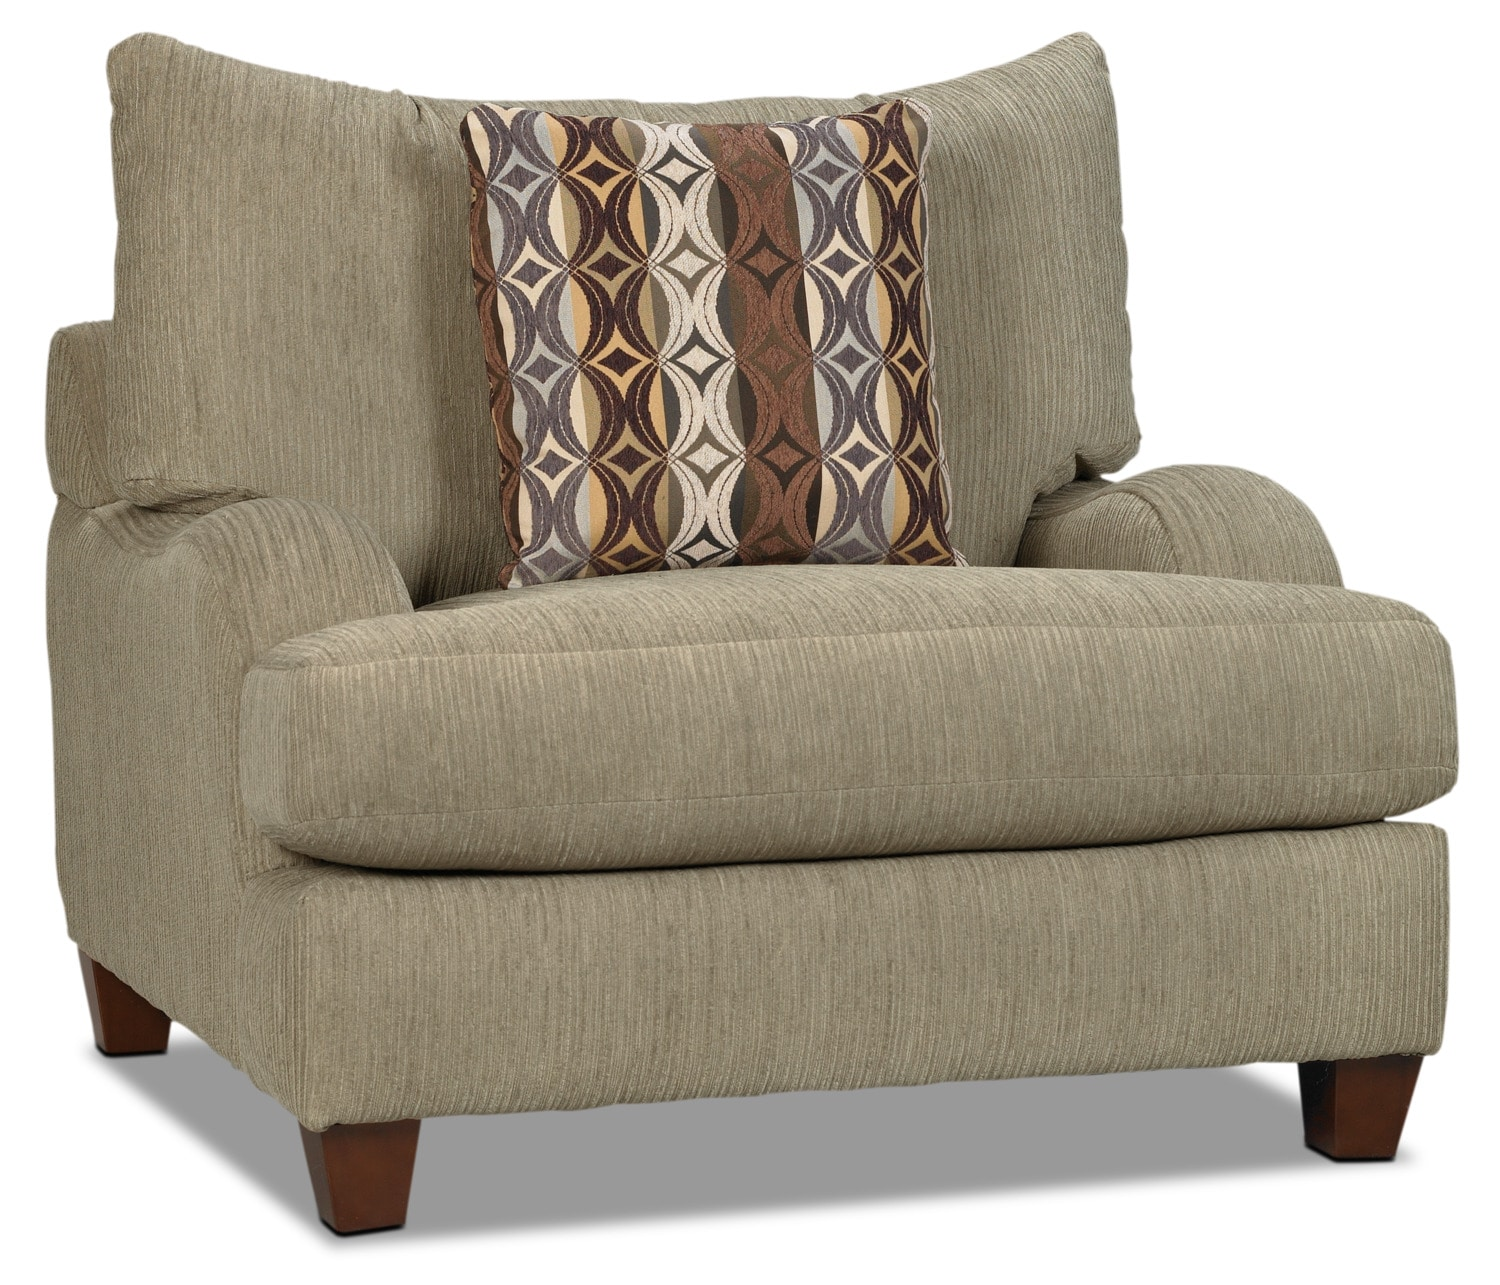 Living Room Furniture - Putty Chenille Chair - Beige